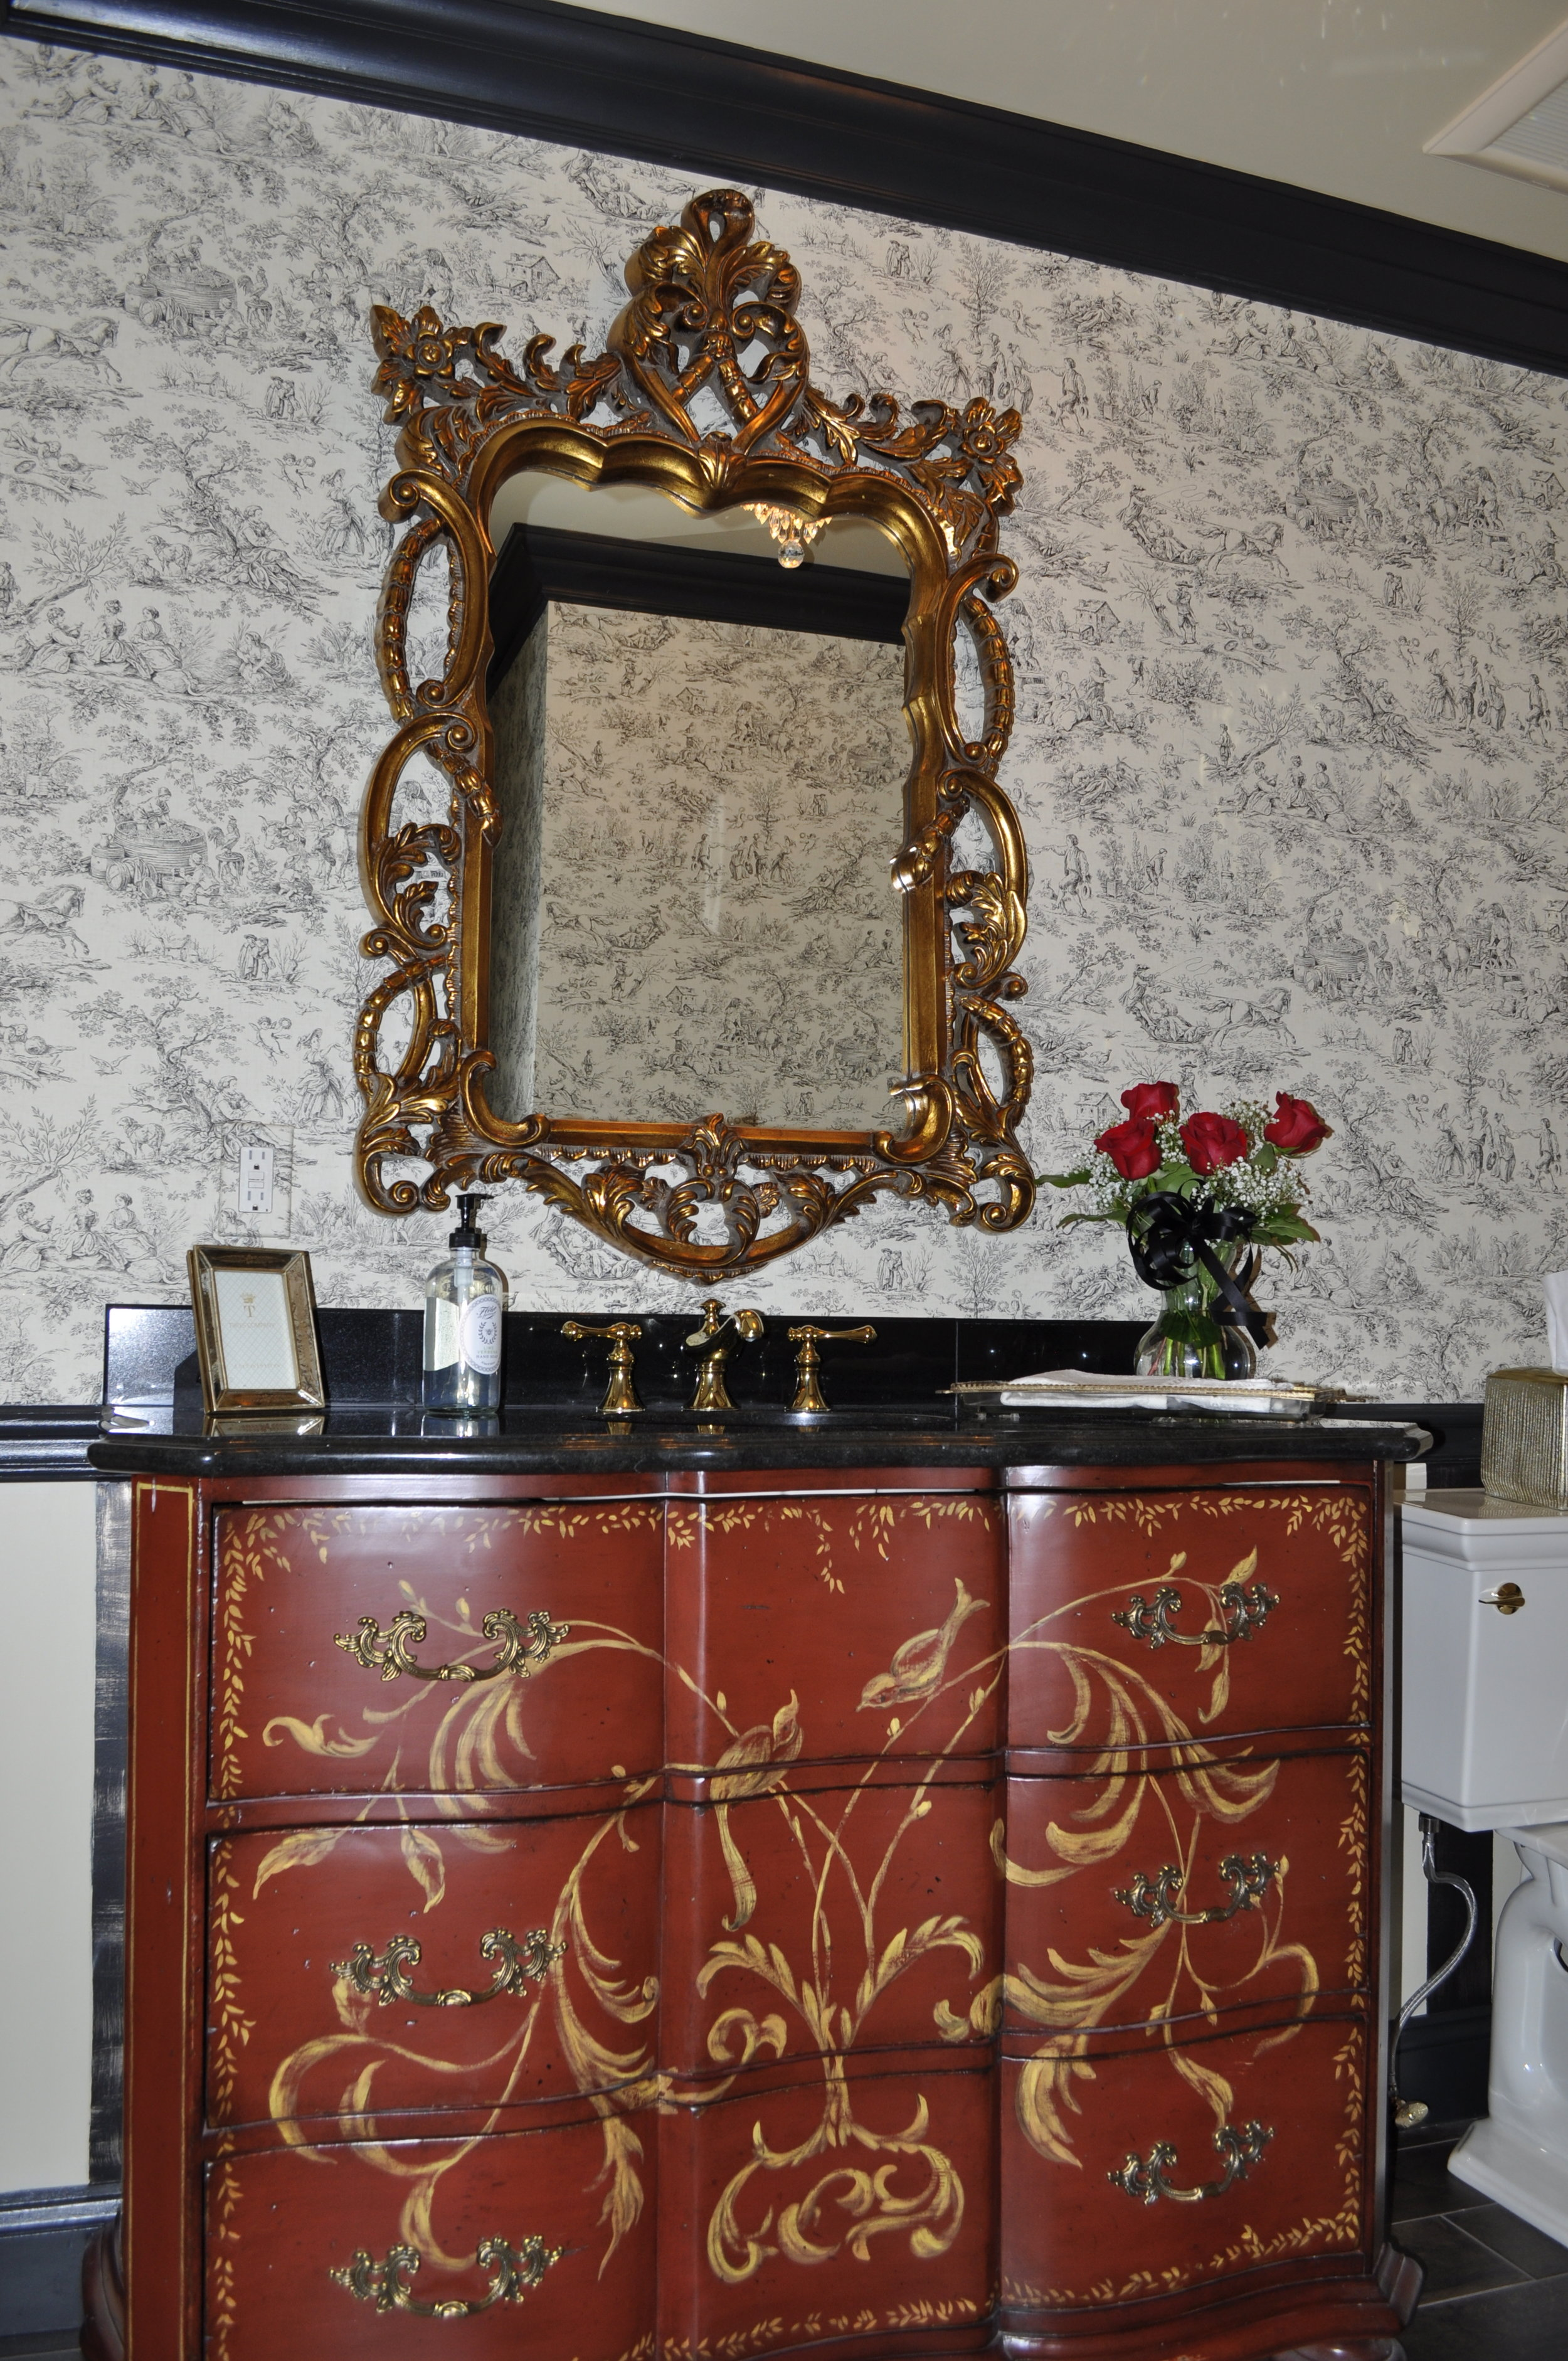 After:  The converted chest and the simple black granite are the perfect pairing. The gold,hand-painted scroll work complements the ornate mirror while beautifully balancing the toile wallpaper. The chic accessories round out the design. No detail is overlooked!